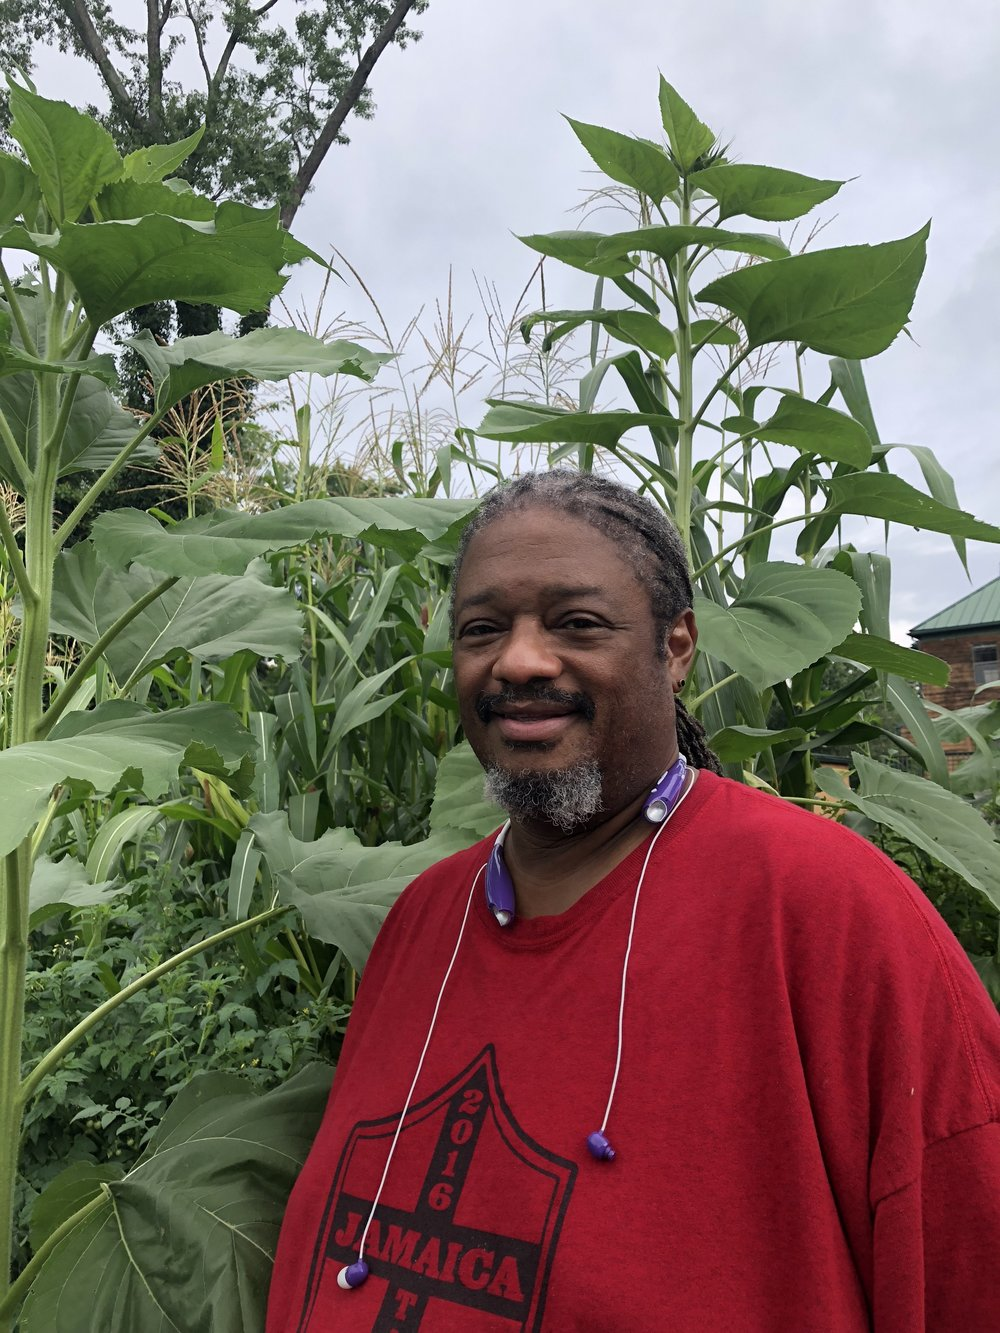 Pastor Chris Battle of the New Eastside Farmer's Market, Knoxville, TN, Pastor Battle is also Senior Pastor at the Tabernacle Baptist Church, and he started the Community Garden that is located right next to the Church which is located in an urban food desert. He would like to see community gardens become more pevalent in the community. Connect with Pastor Battle through Market Facebook link:  https://www.facebook.com/EastsideSundayMarket/  or by this link to his Church:  http://www.mytabernacle.com/